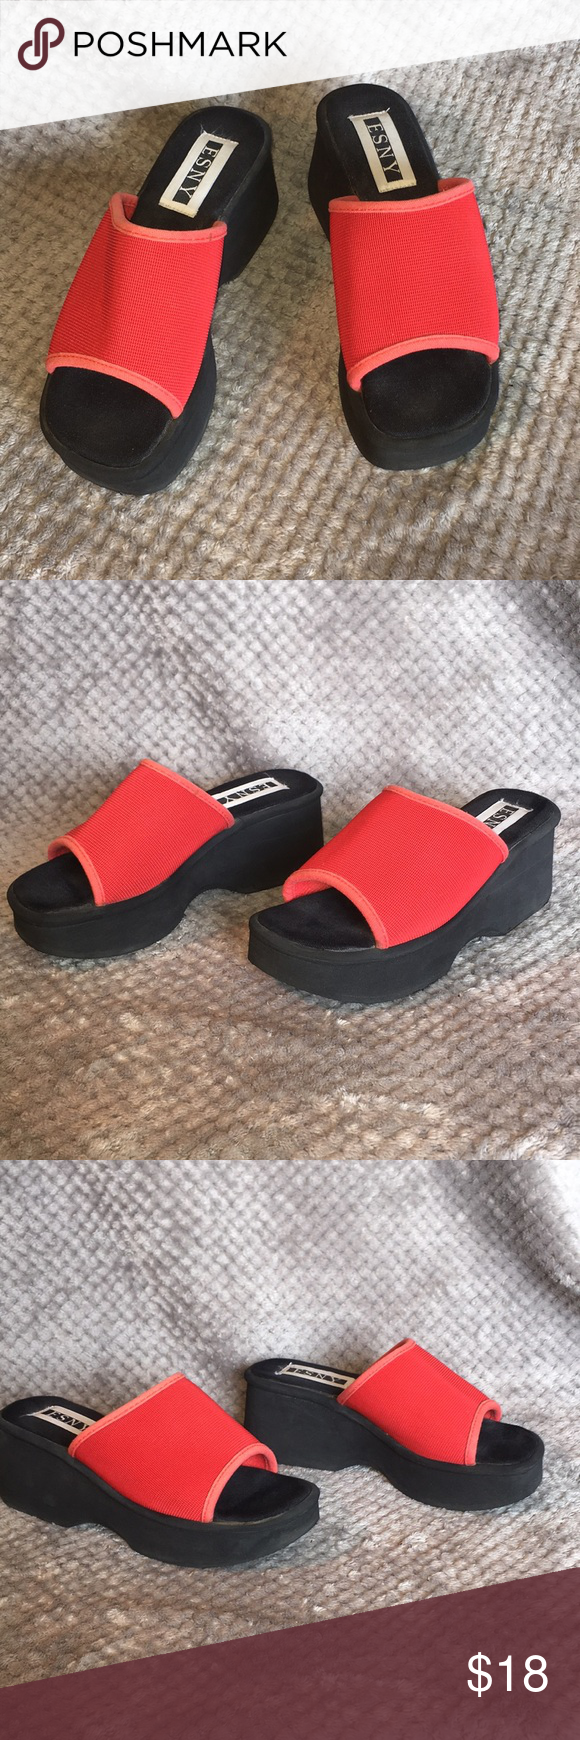 cc06cea4ac964 Wedge Loafers · Esny Platform Red Sandals No Sz Very Comfortable Long  Wearing Summer Shoes Cool Easy Fit Sandals